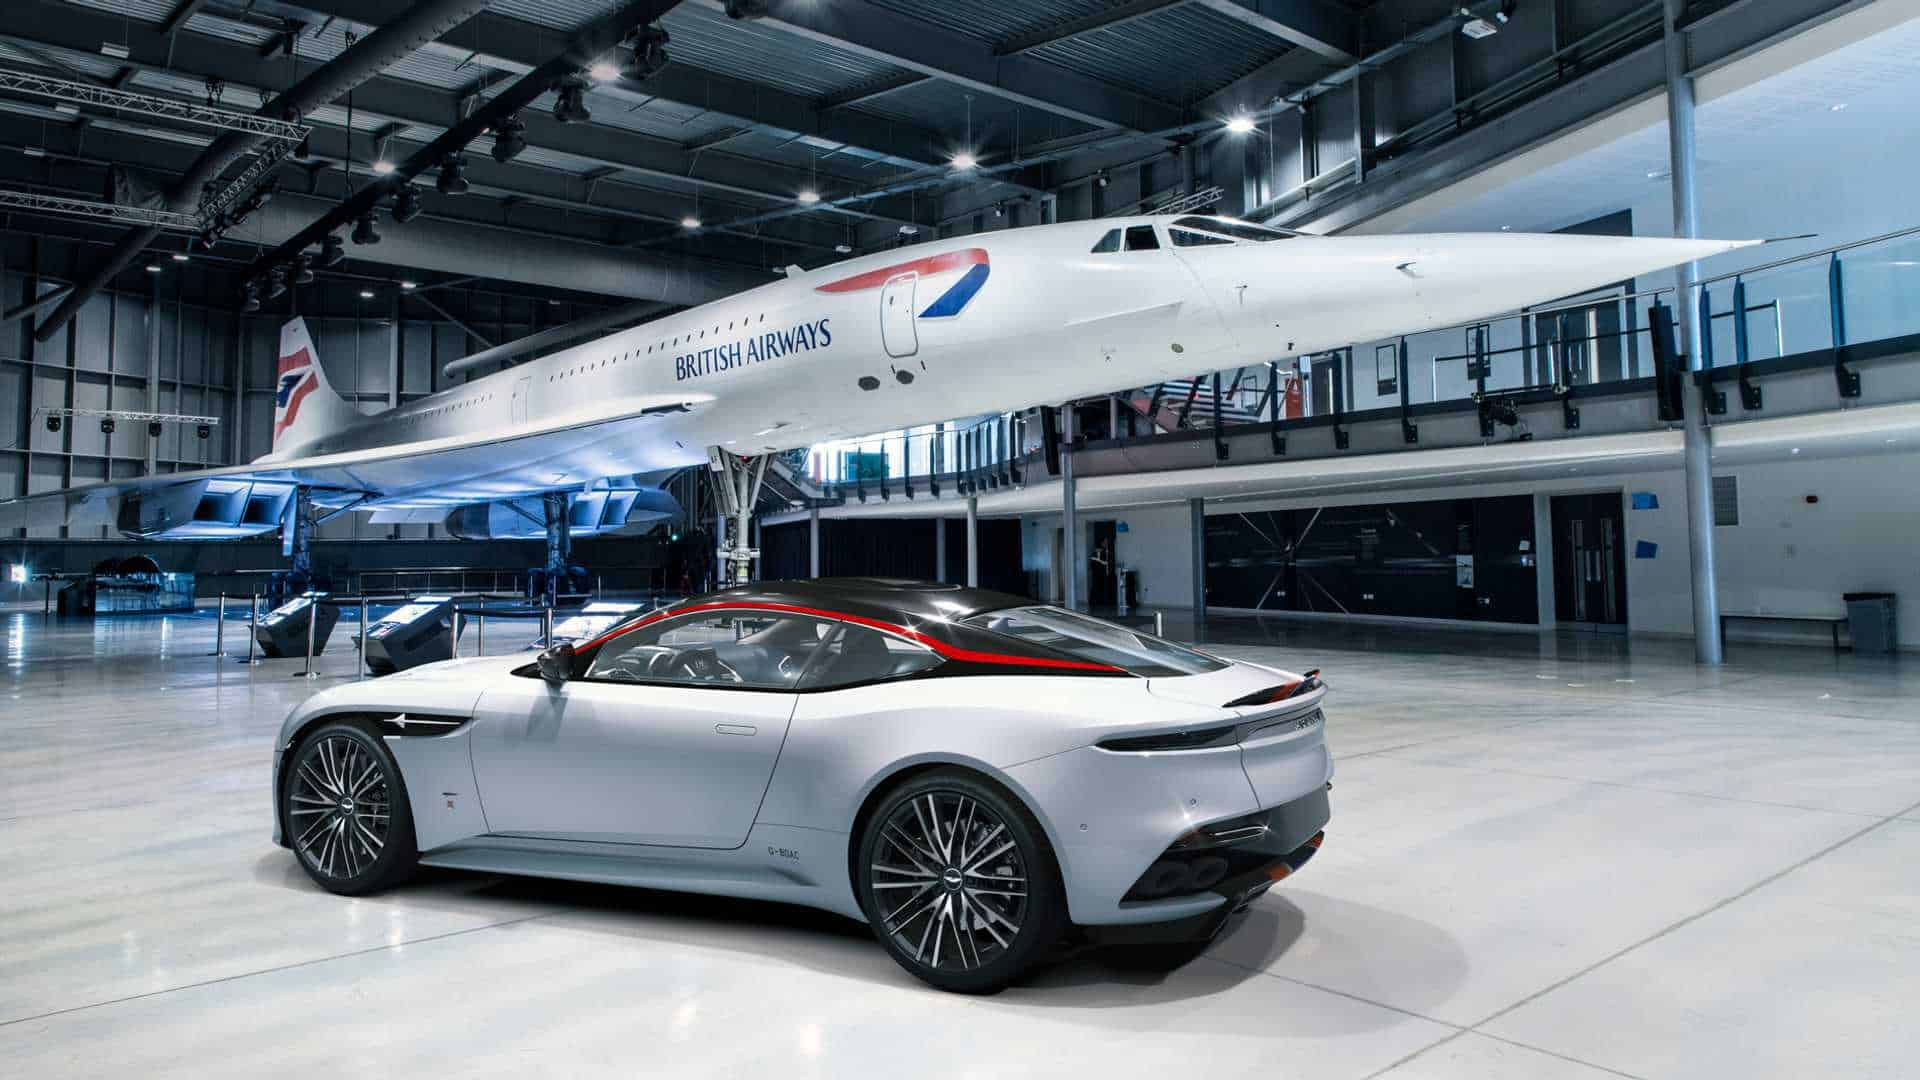 Aston Martin DBS Superleggera Concorde Edition 2